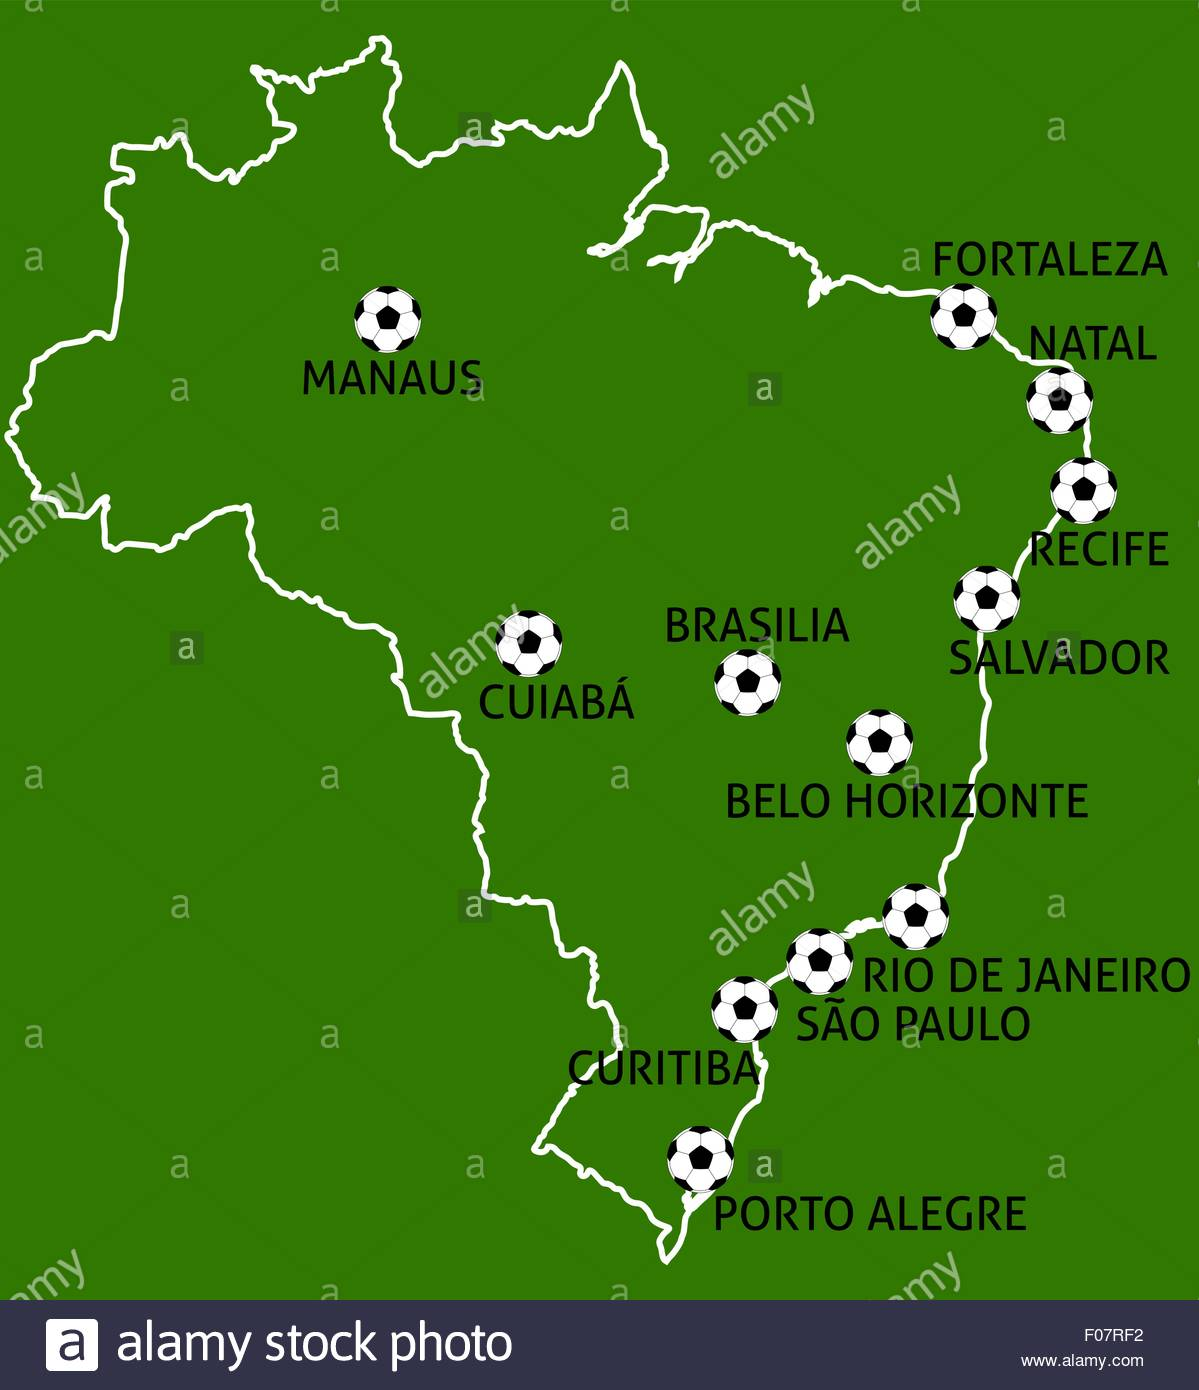 Brazil 2014 football cup cities map balls stock vector art brazil 2014 football cup cities map balls gumiabroncs Image collections